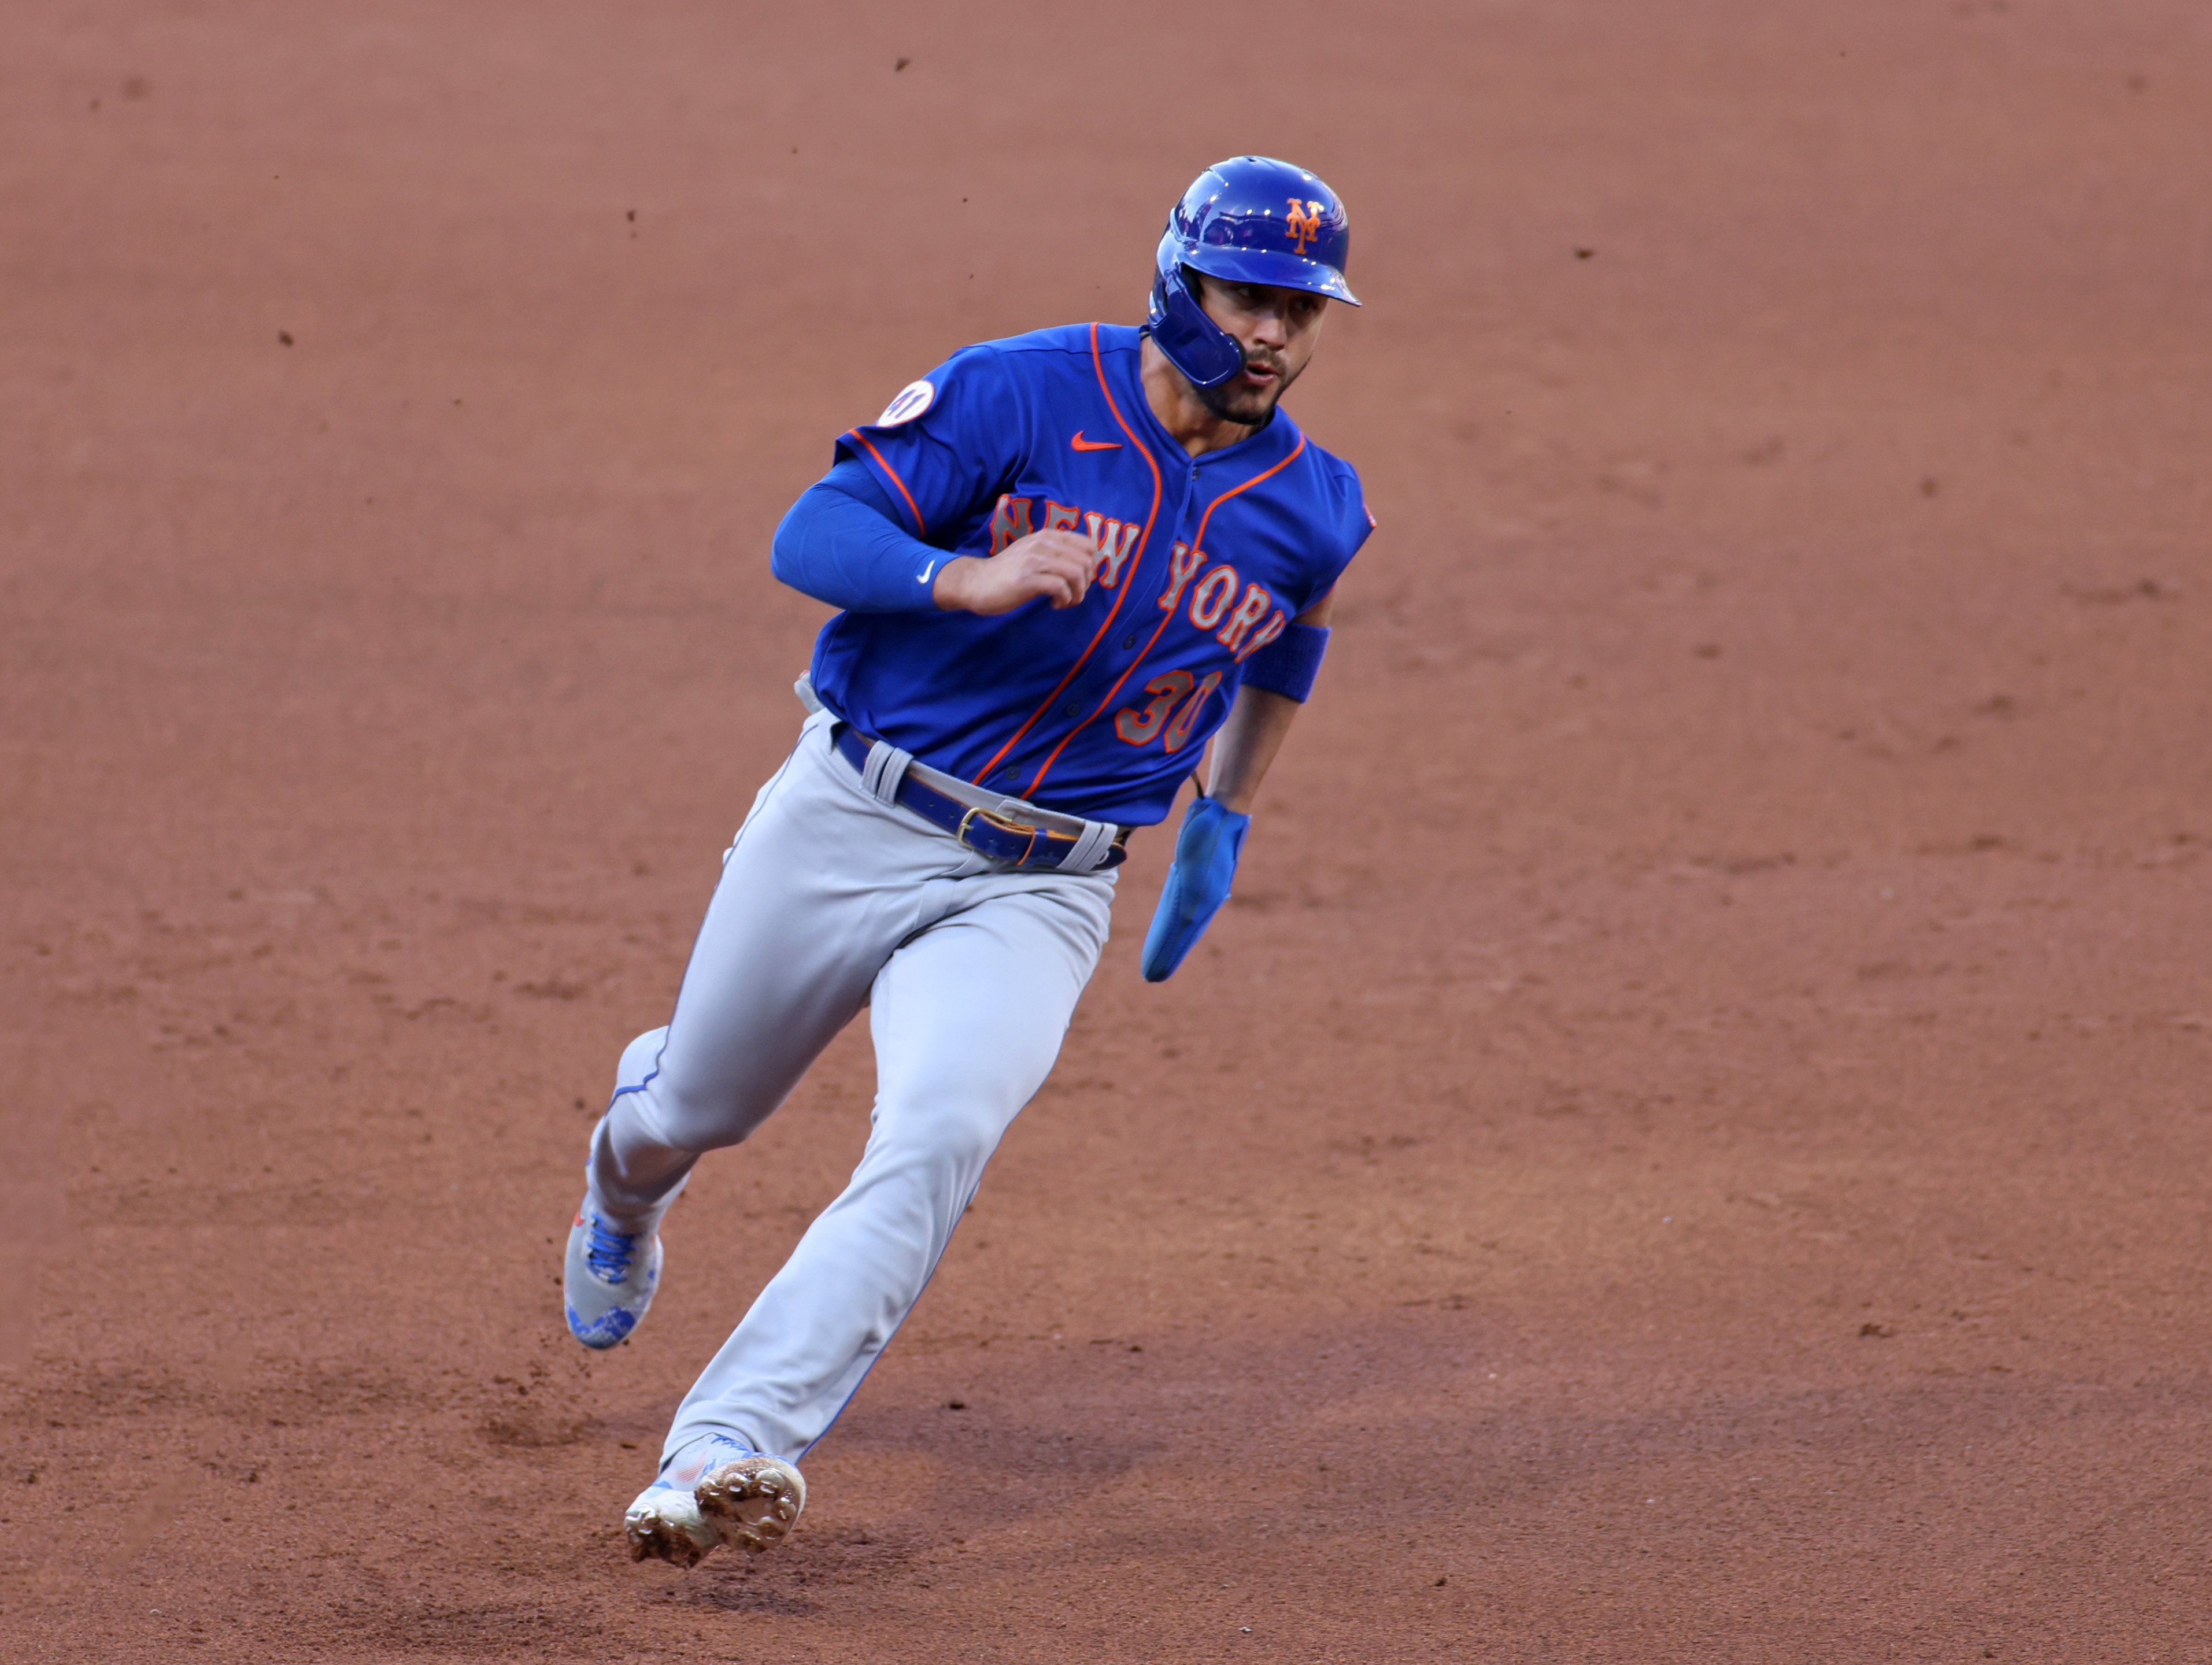 Is Michael Conforto Good?